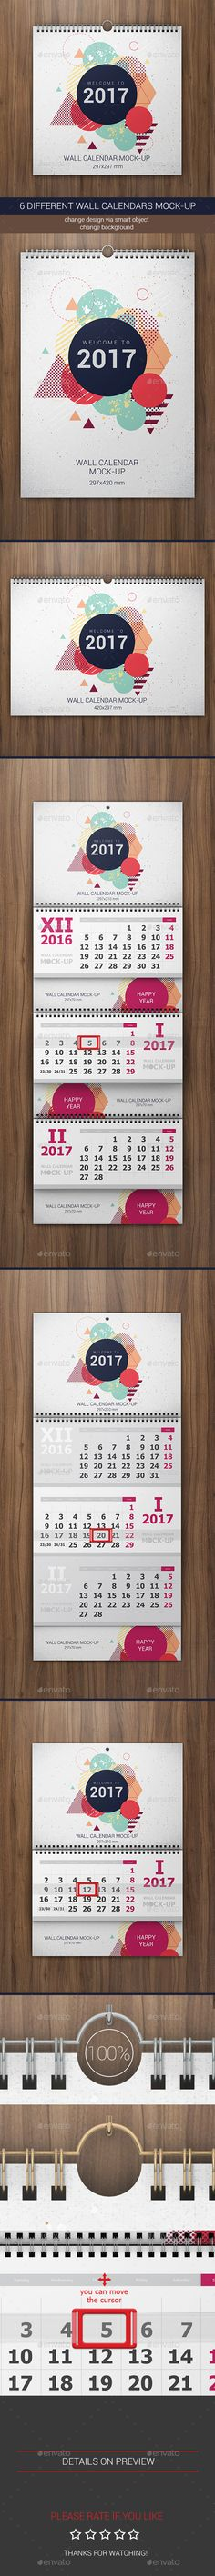 Wall Calendar New Update 2018 Calendar 2017, Ai illustrator and - calendar flyer template